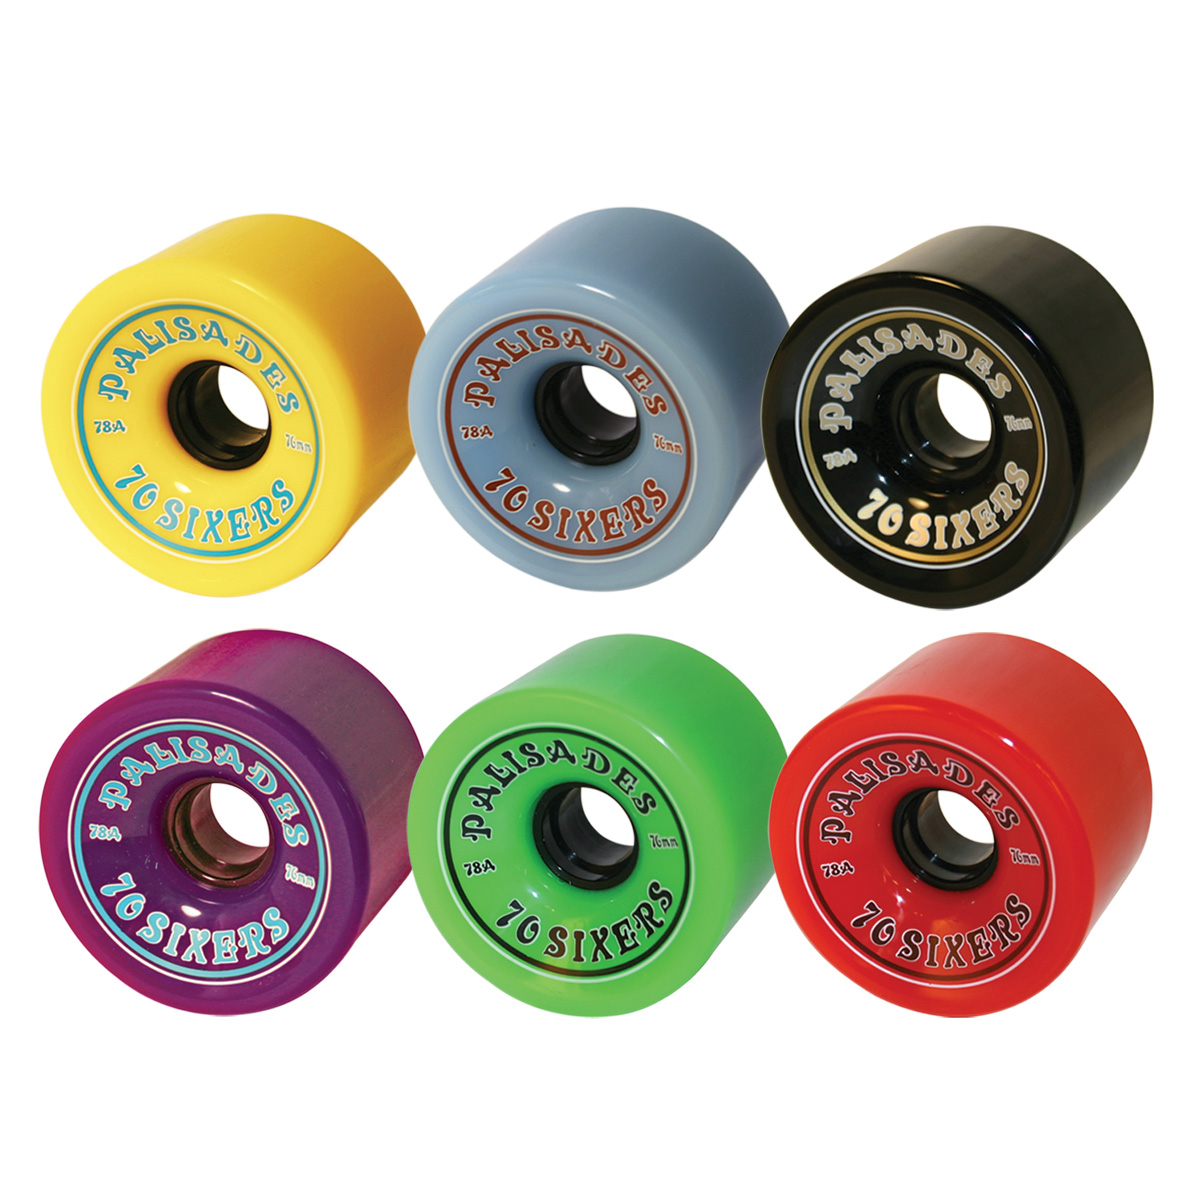 70 Sixers - 76mm Wheels  78A w/hub. Yellow, Blue, Black, Purple, Green, Red